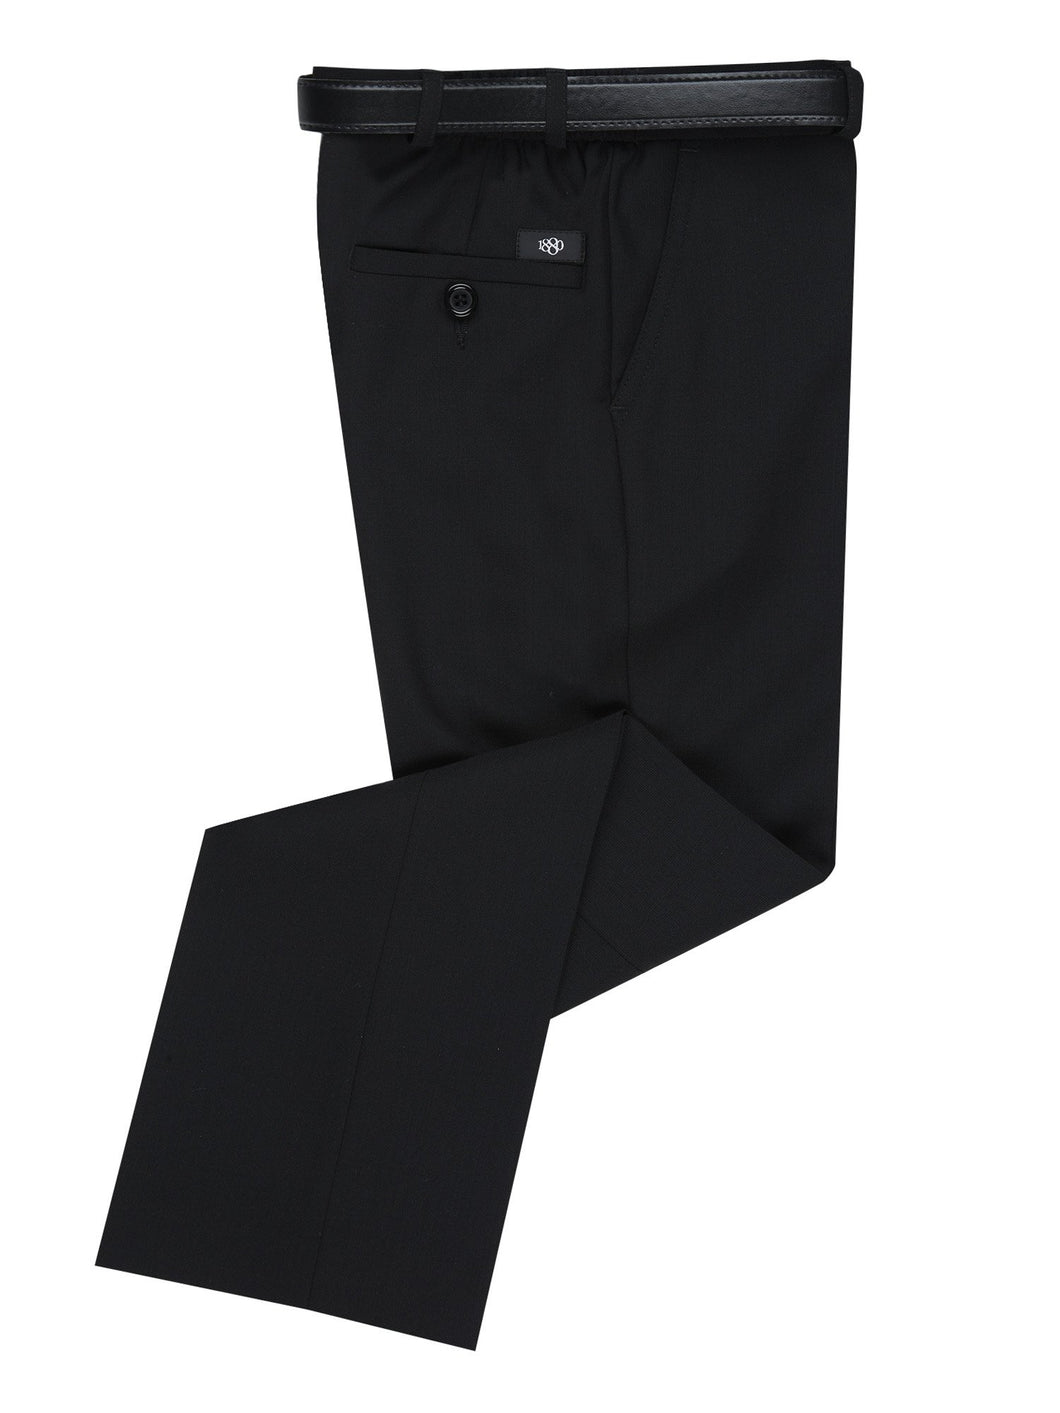 1880 #32 Basic Plus Fit Black Trousers